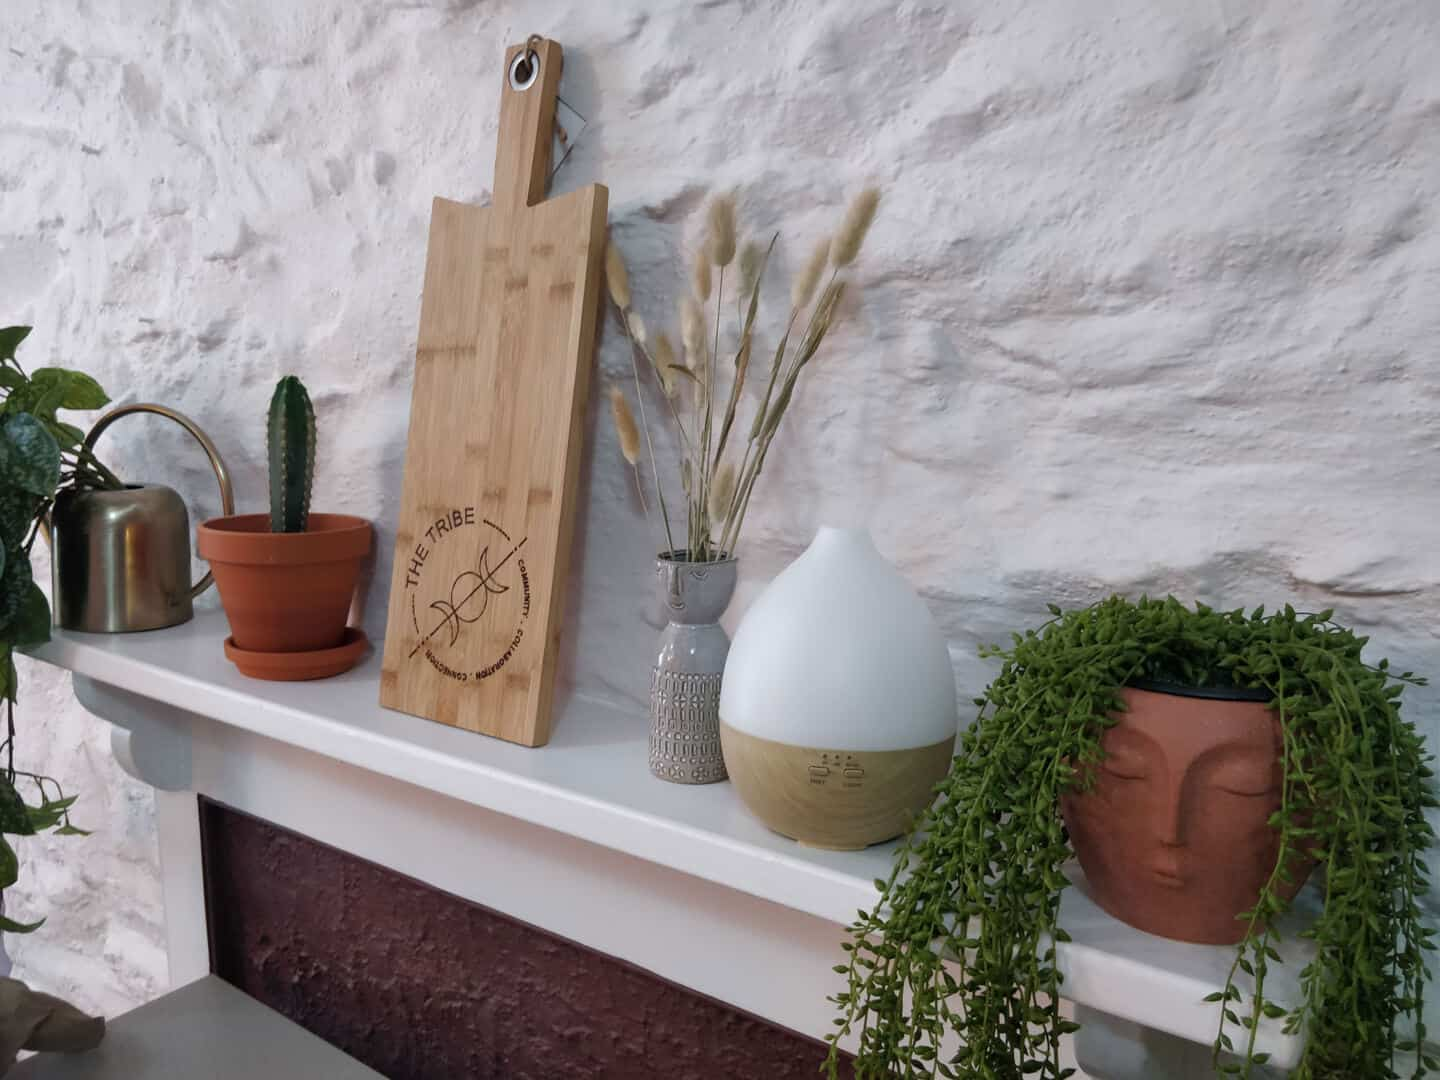 A mantle full of plants and vases